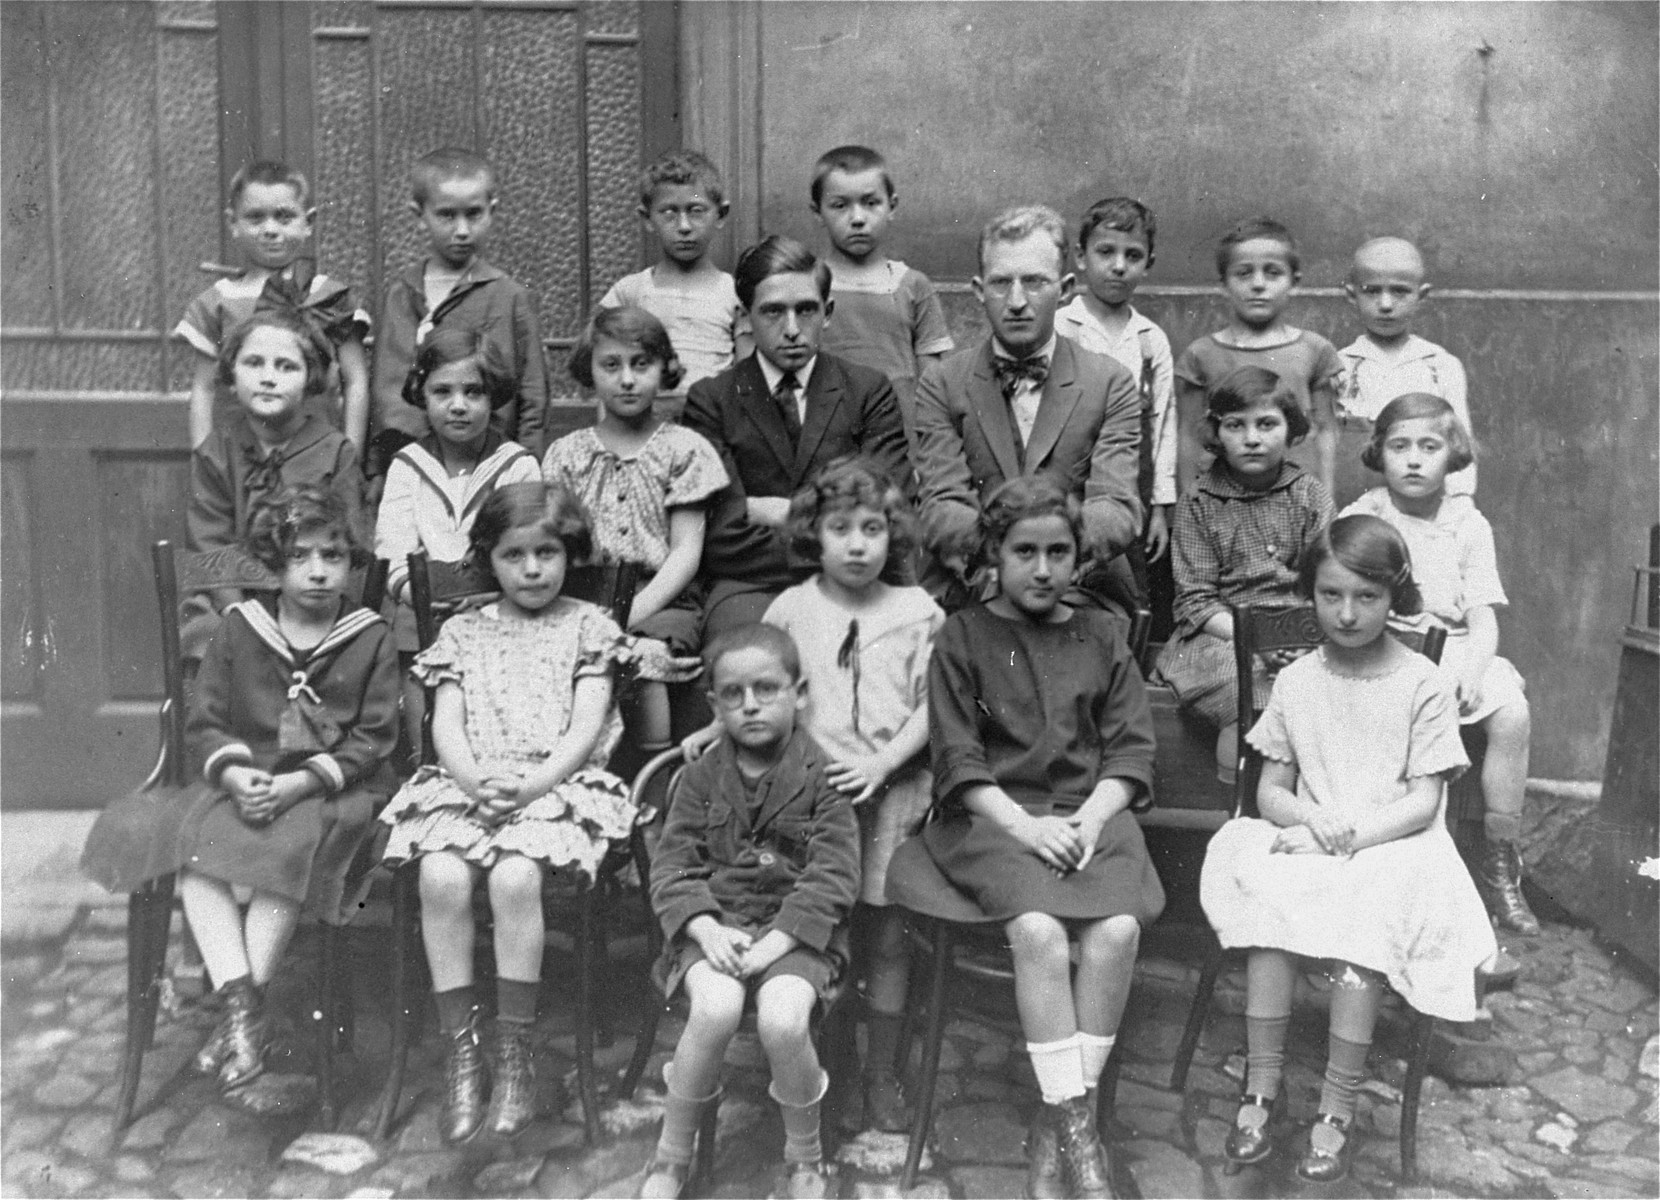 Group portrait of pupils at the Jiddvska Matice Skolska (founded by Viktor Kohn) taken on the first day of classes at the Jewish school.     Ruth Kohn is pictured at the right in the front row. The teachers are Oskar Quasnik Rabinowic (left) and Herman Furst (right).